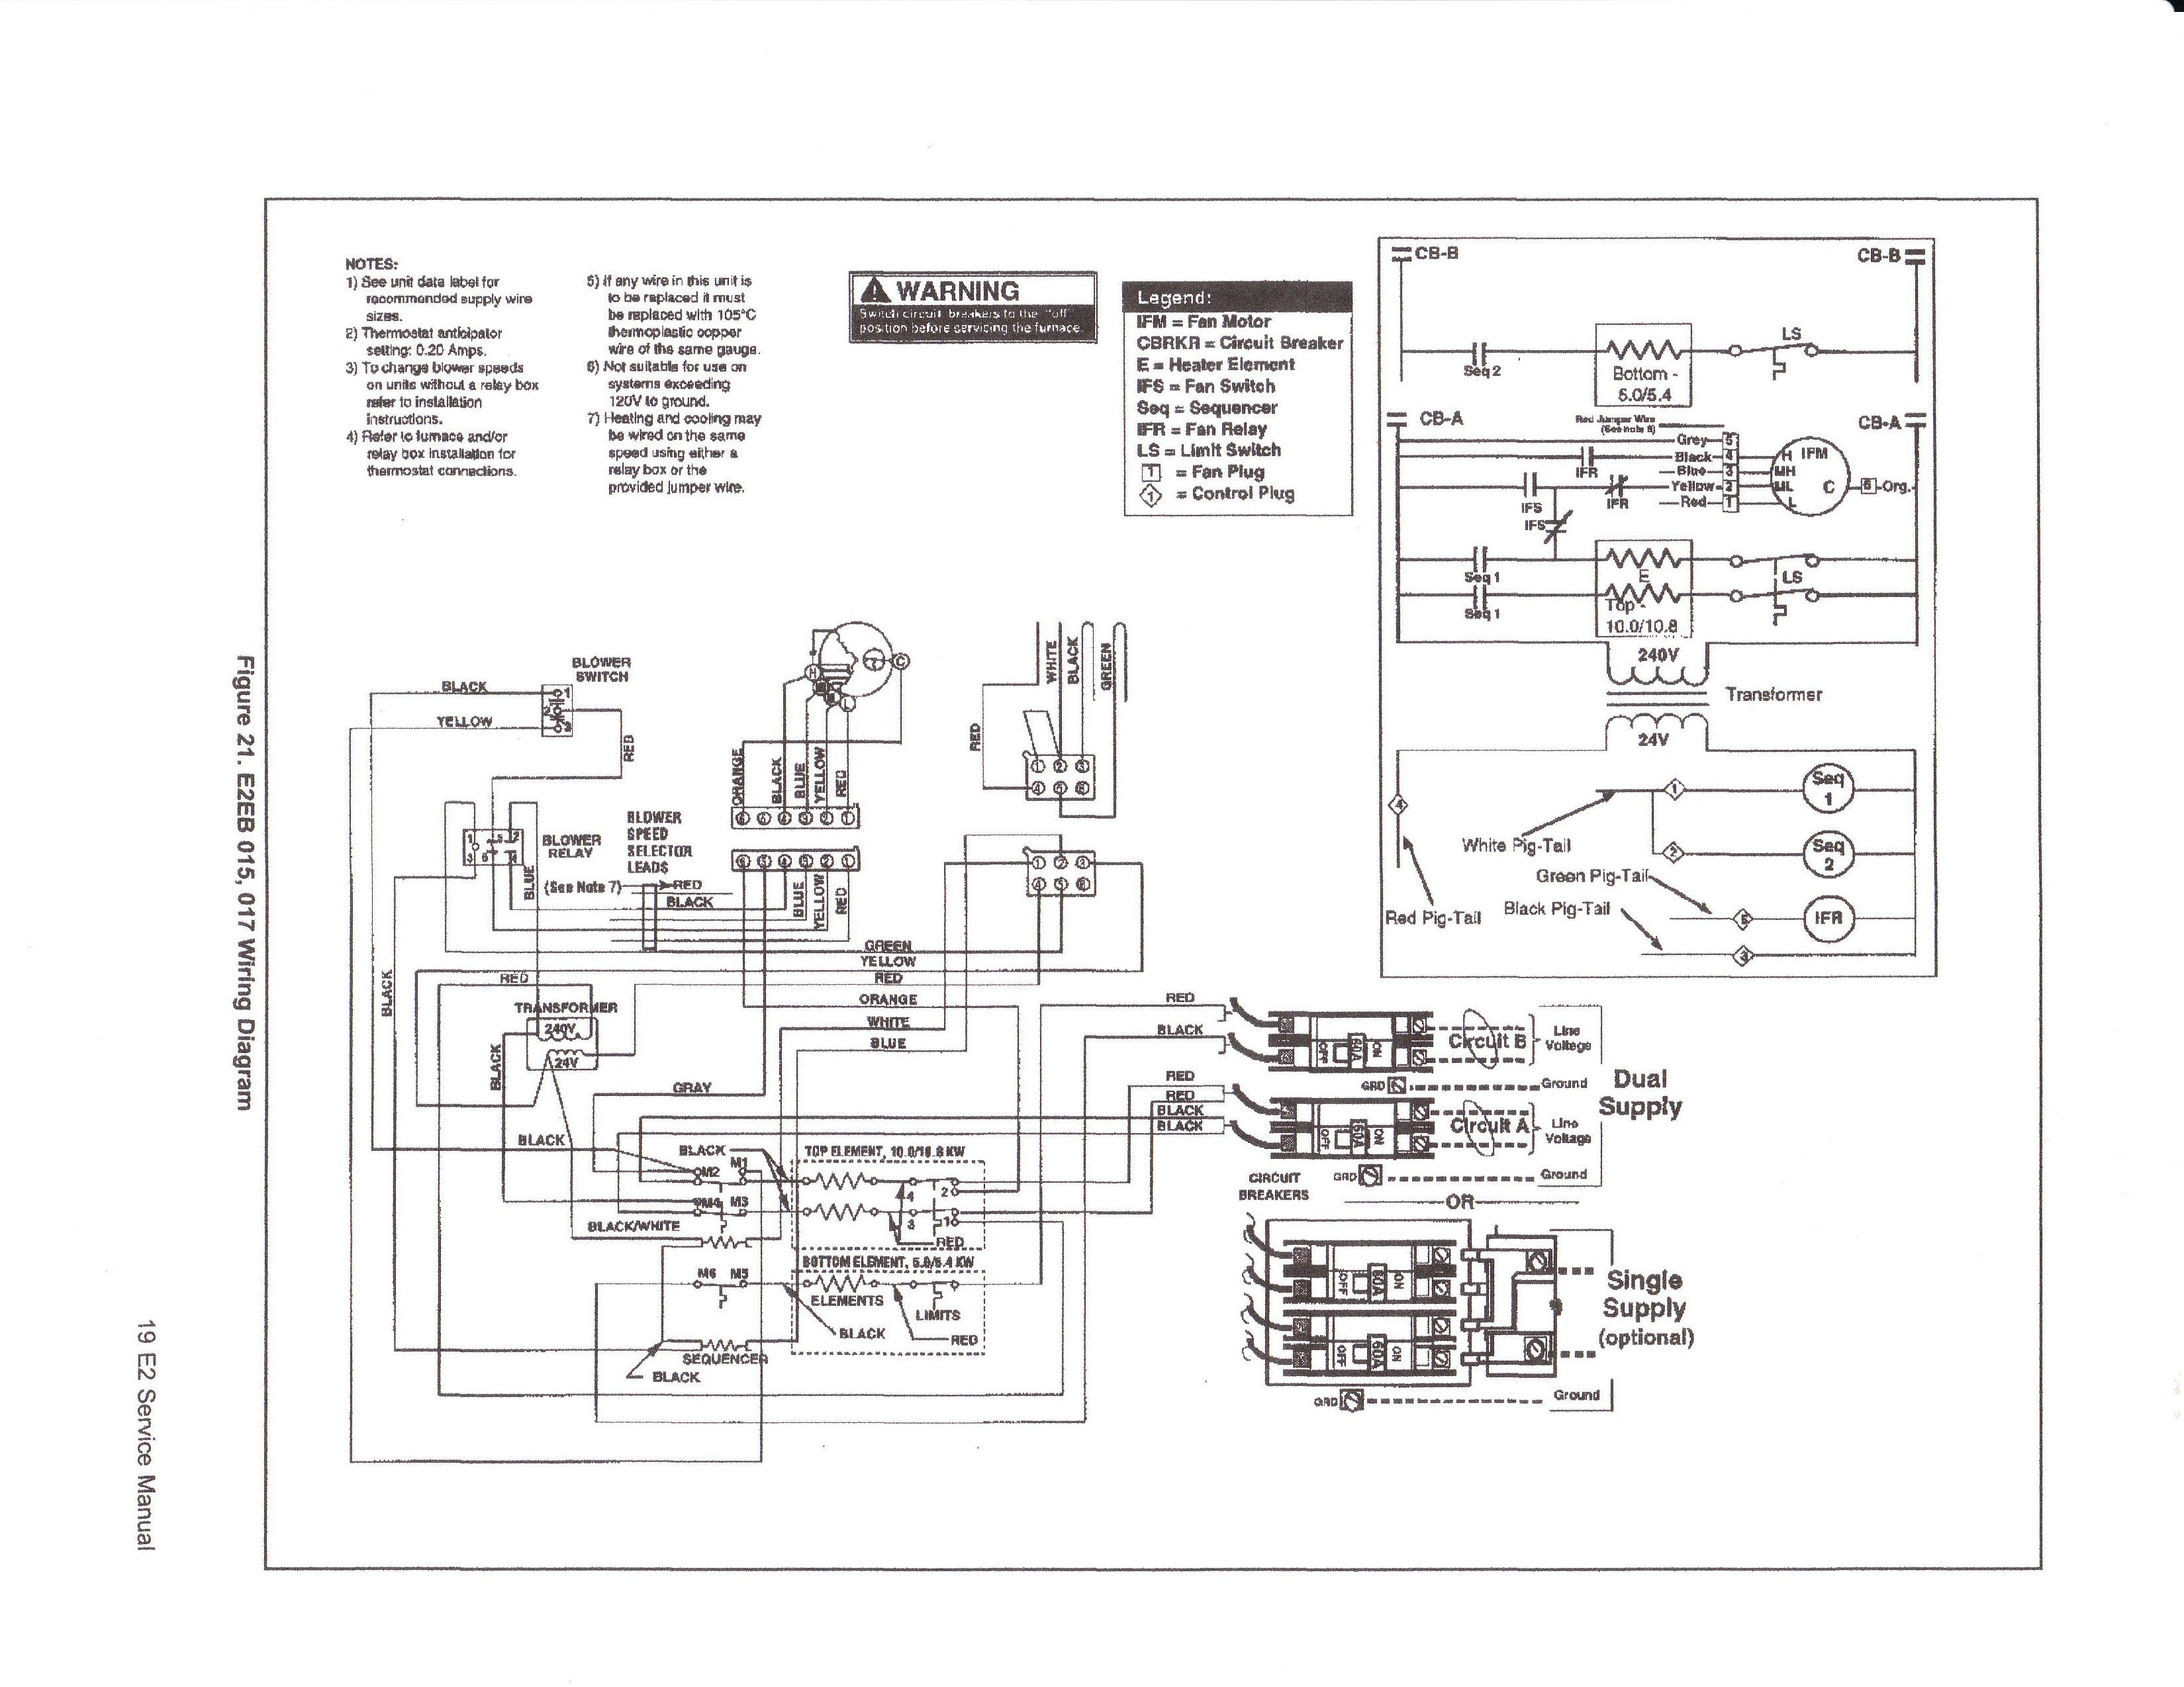 30 Rv Wiring Diagram Coleman Mach Thermostat | Wiring Diagram - Coleman Rv Air Conditioner Wiring Diagram